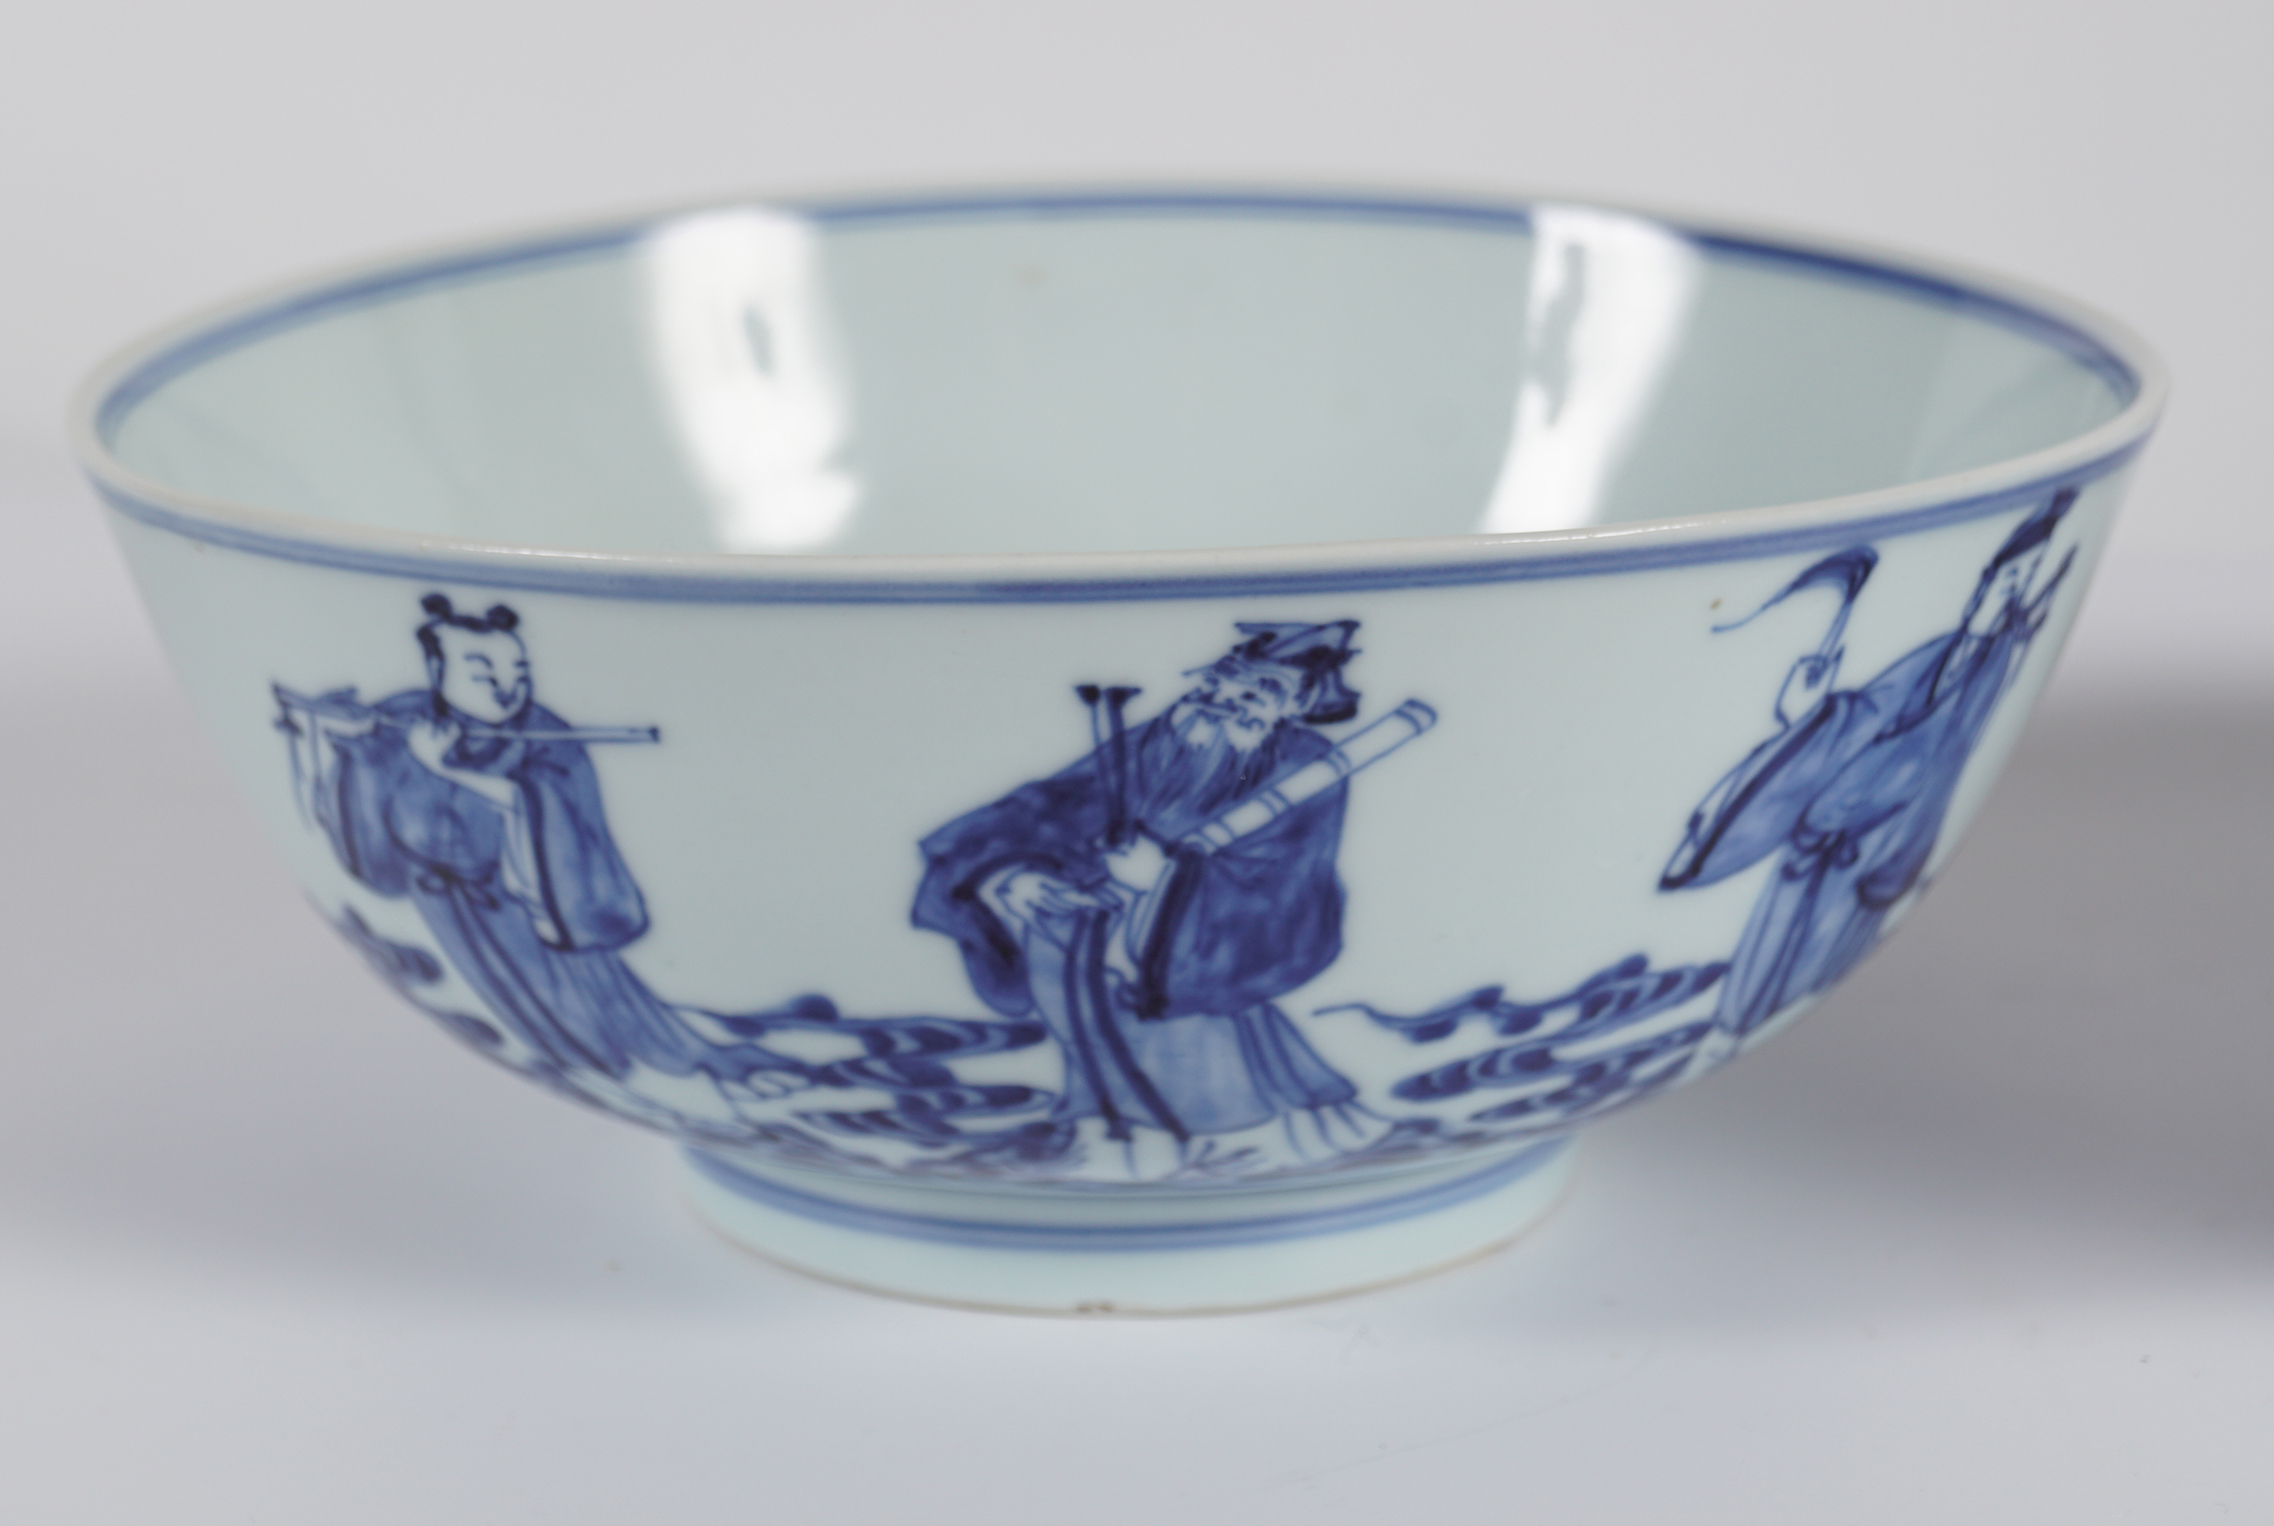 PAIR OF CHINESE BLUE AND WHITE BOWLS - Image 2 of 6